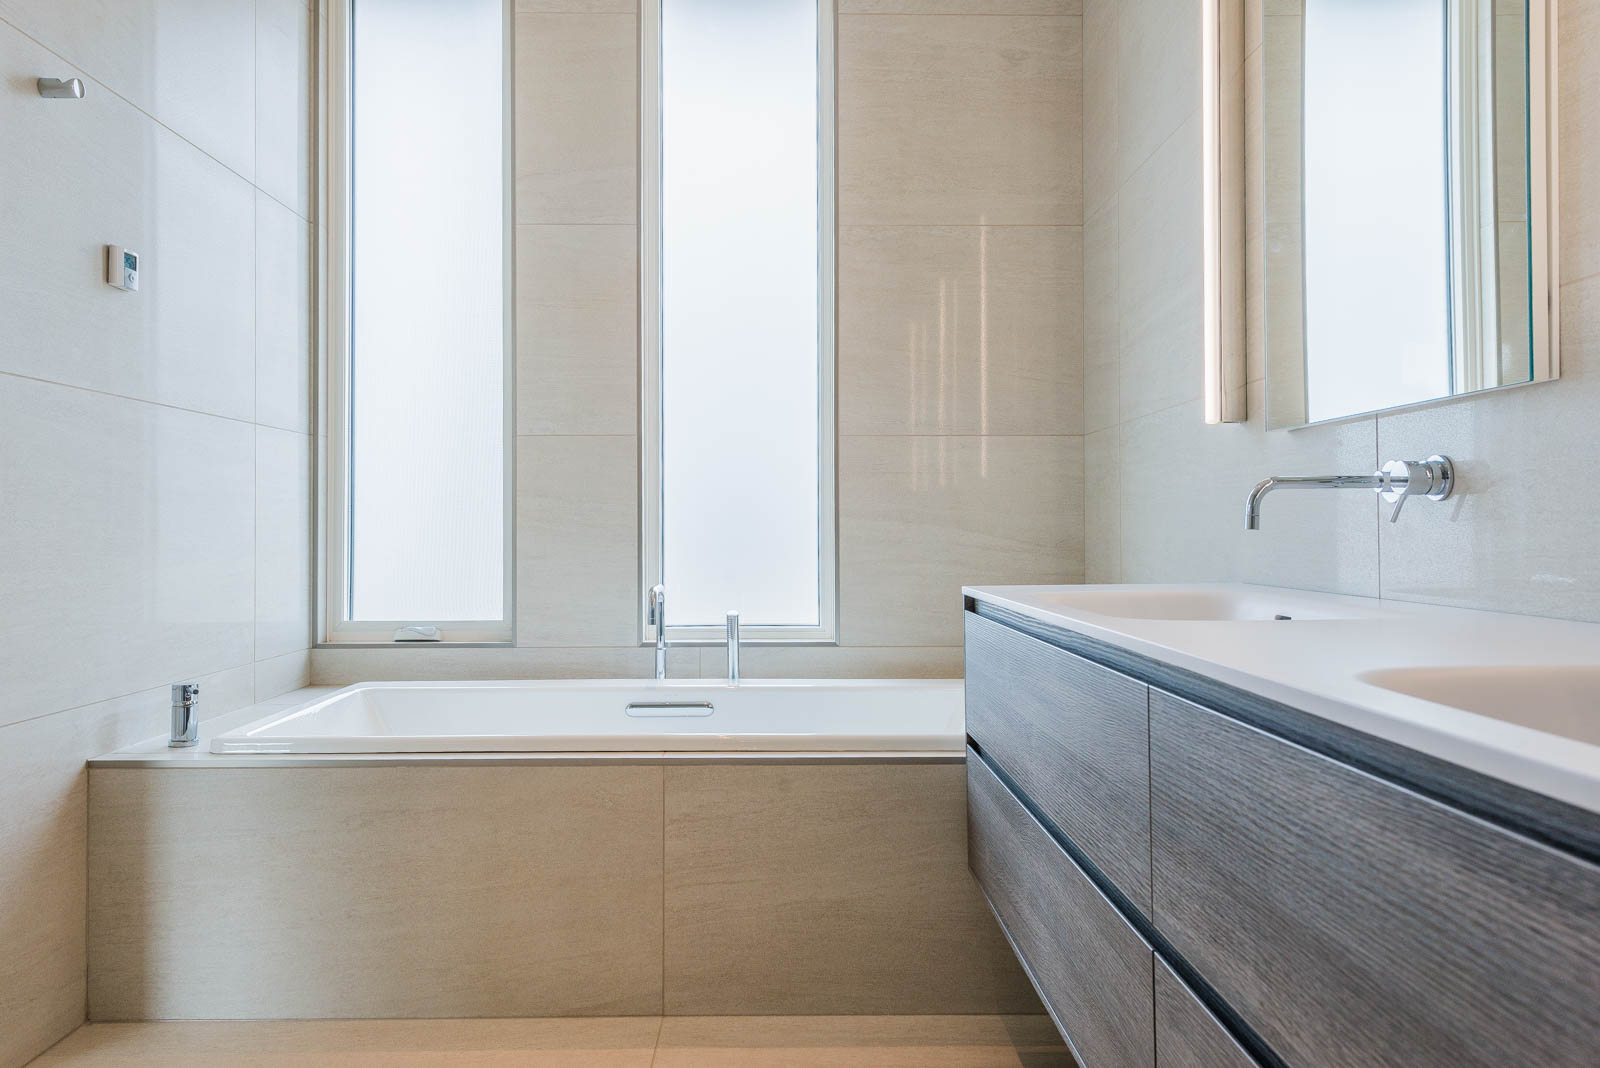 Luxury kitchen and bathroom plumbing fixtures provide the finishing touch - Oxford Plumbing